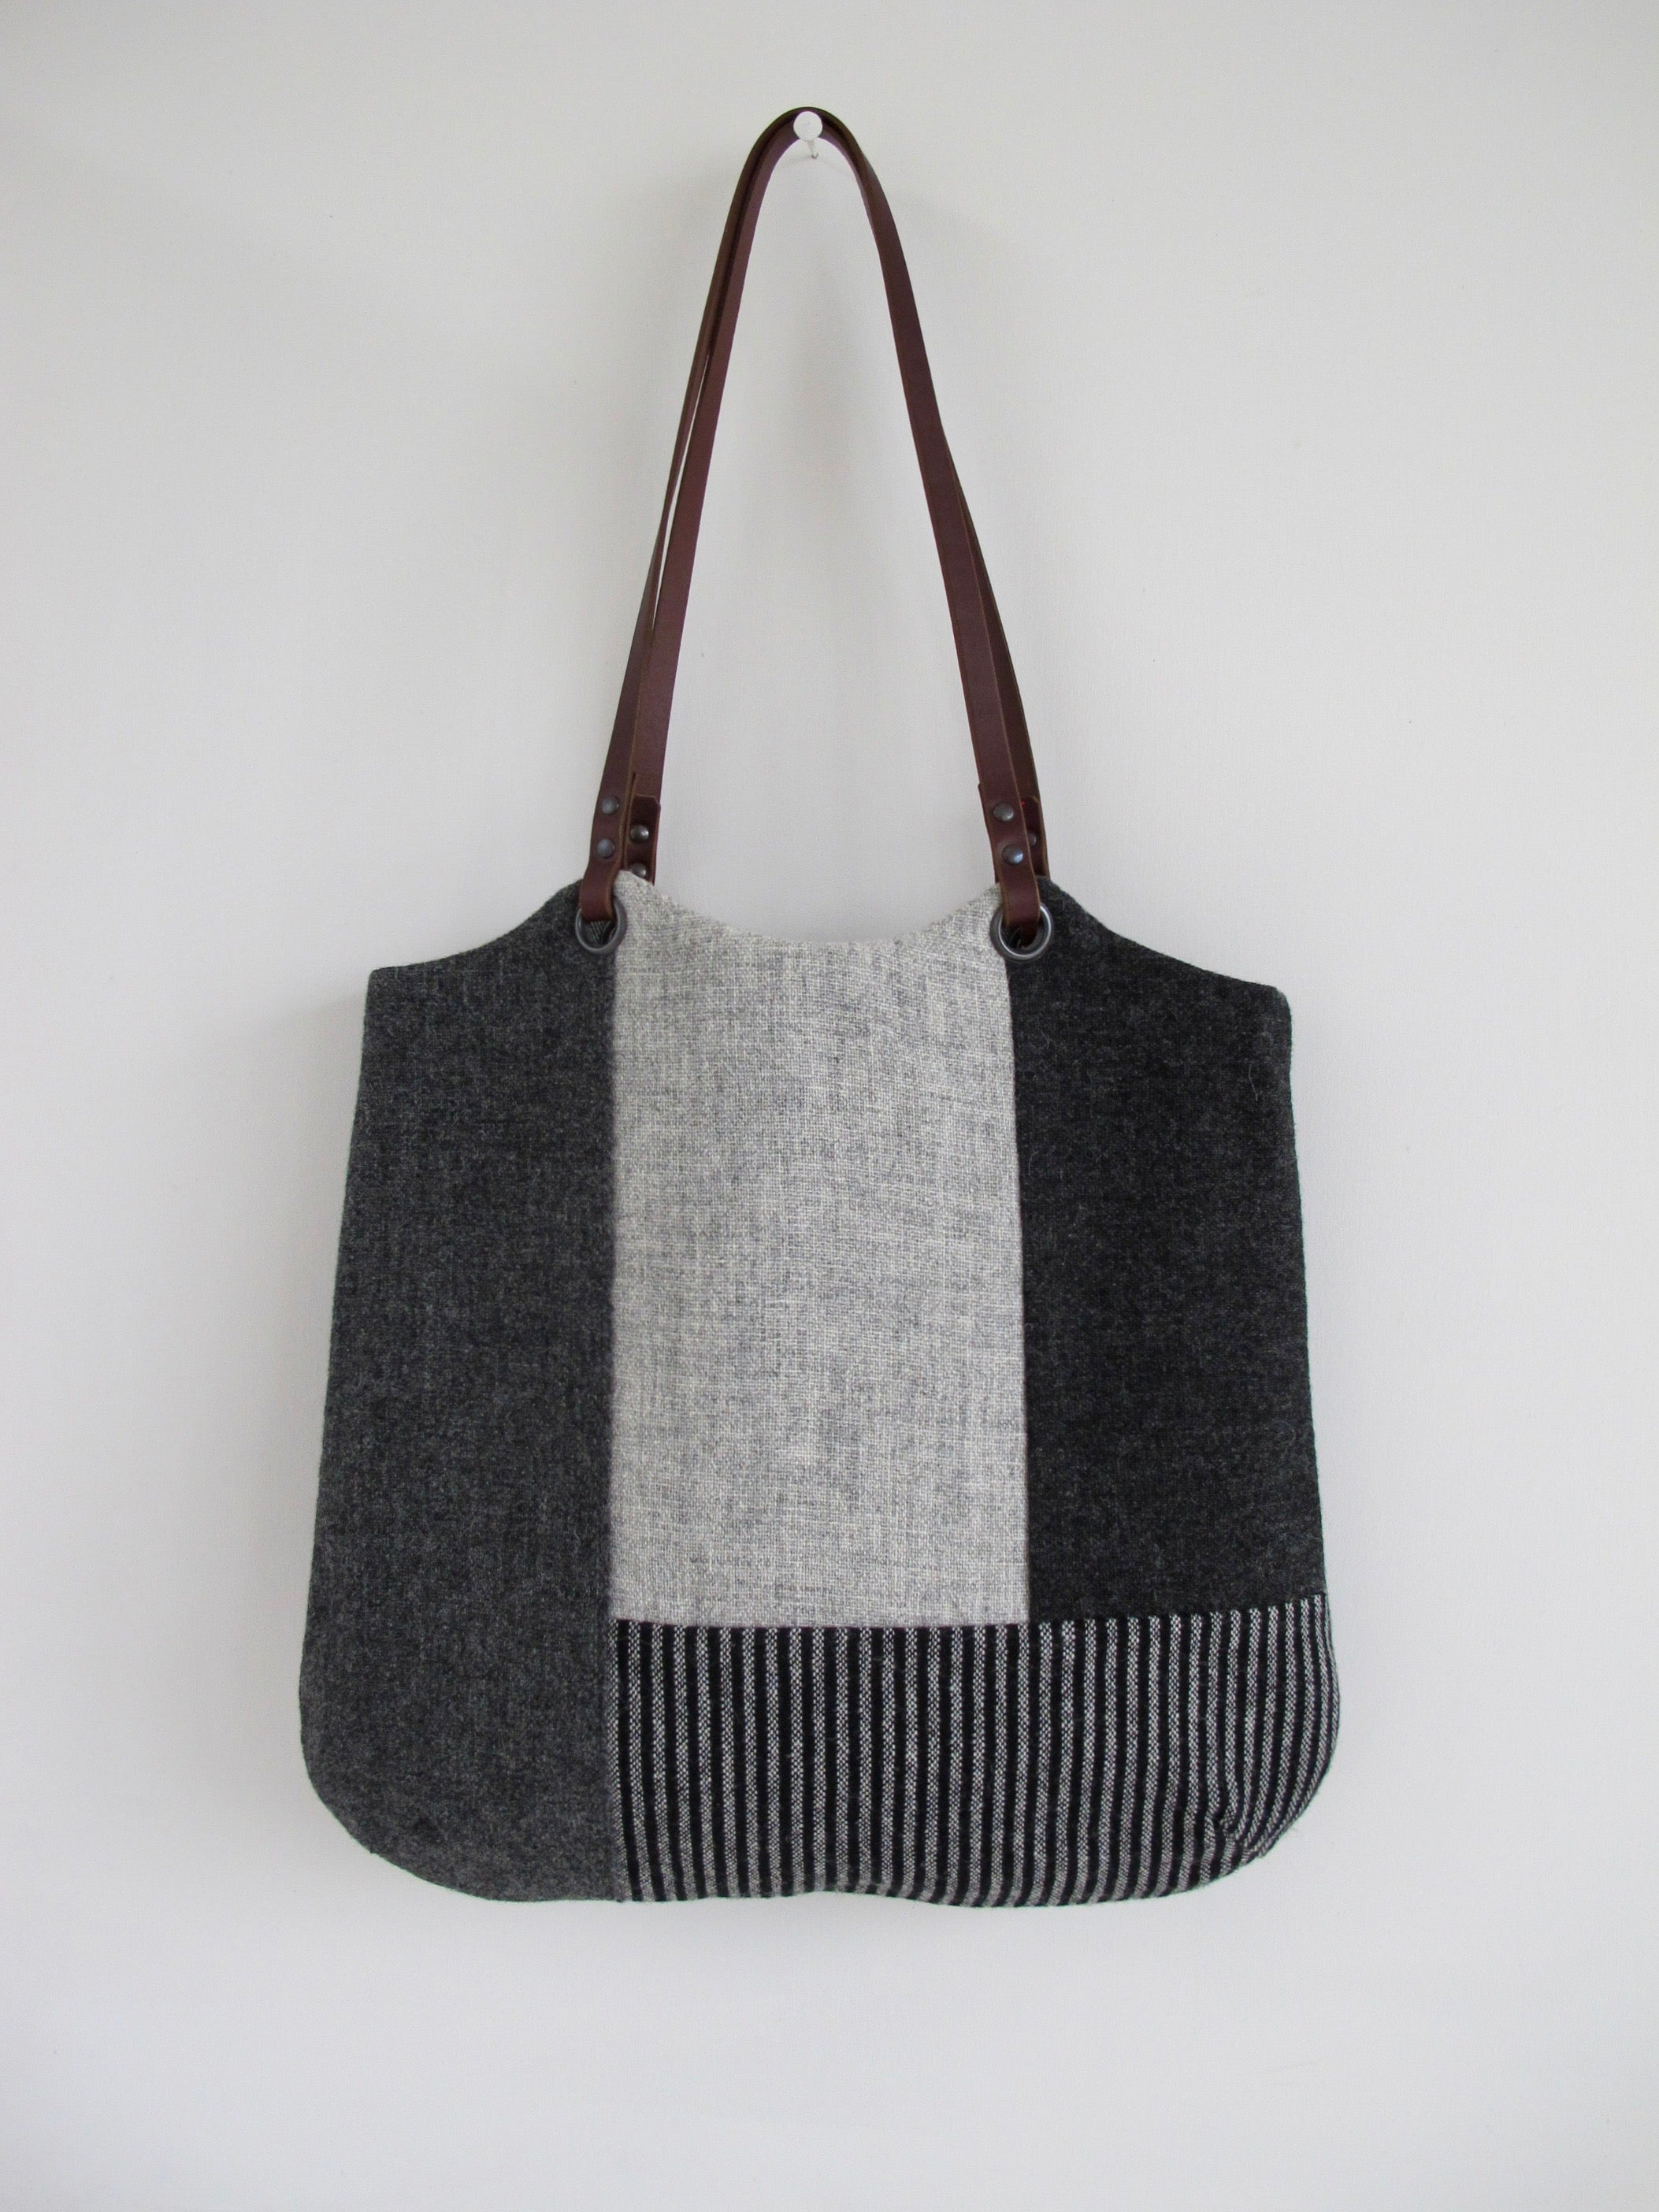 Patchwork Tote Bag - shades of grey block I